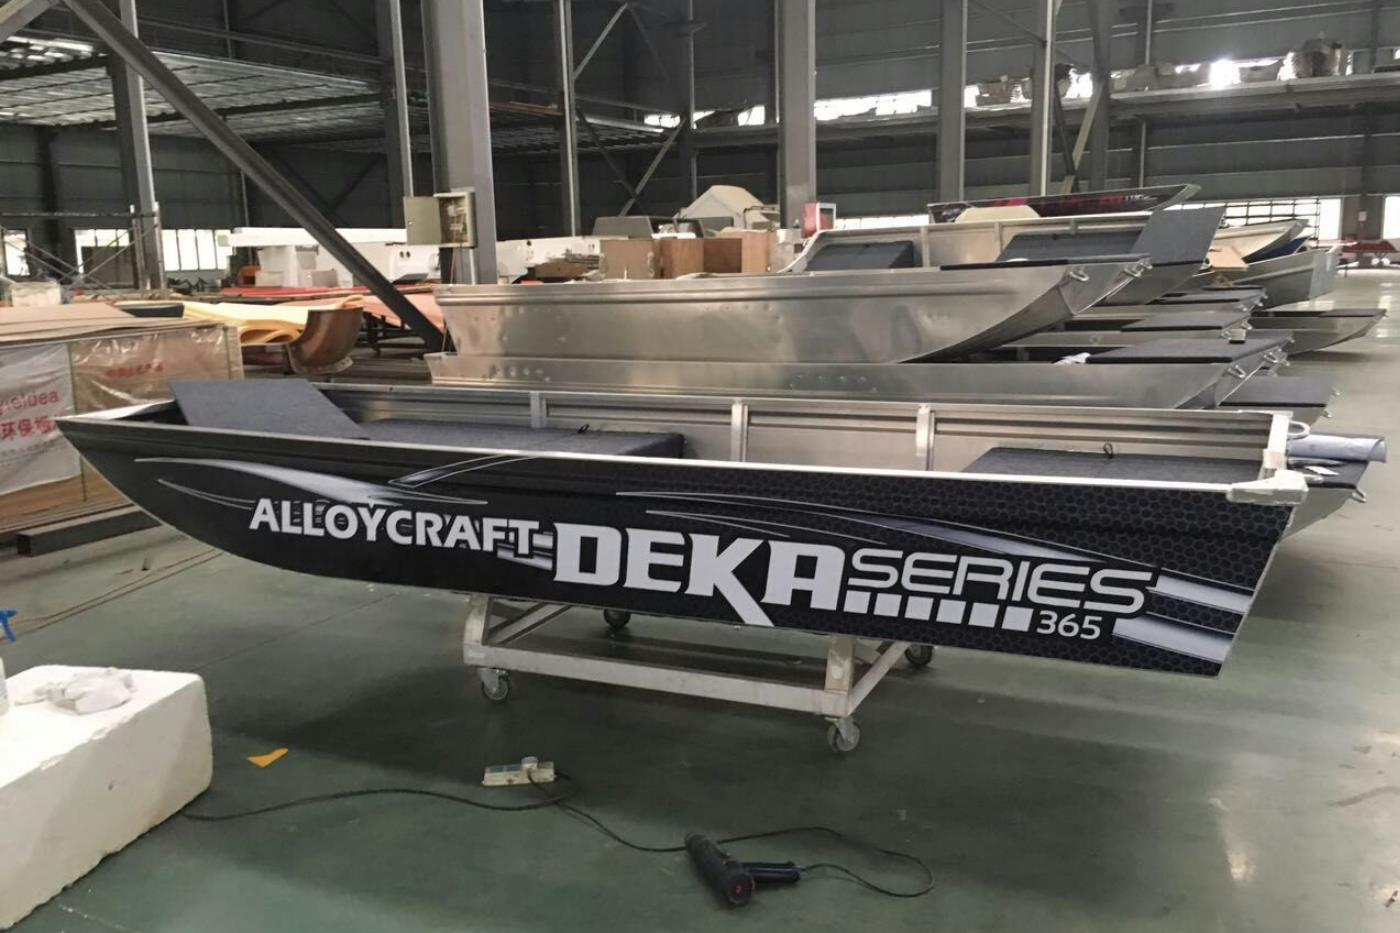 DEKA Boote powered by Alloycraft